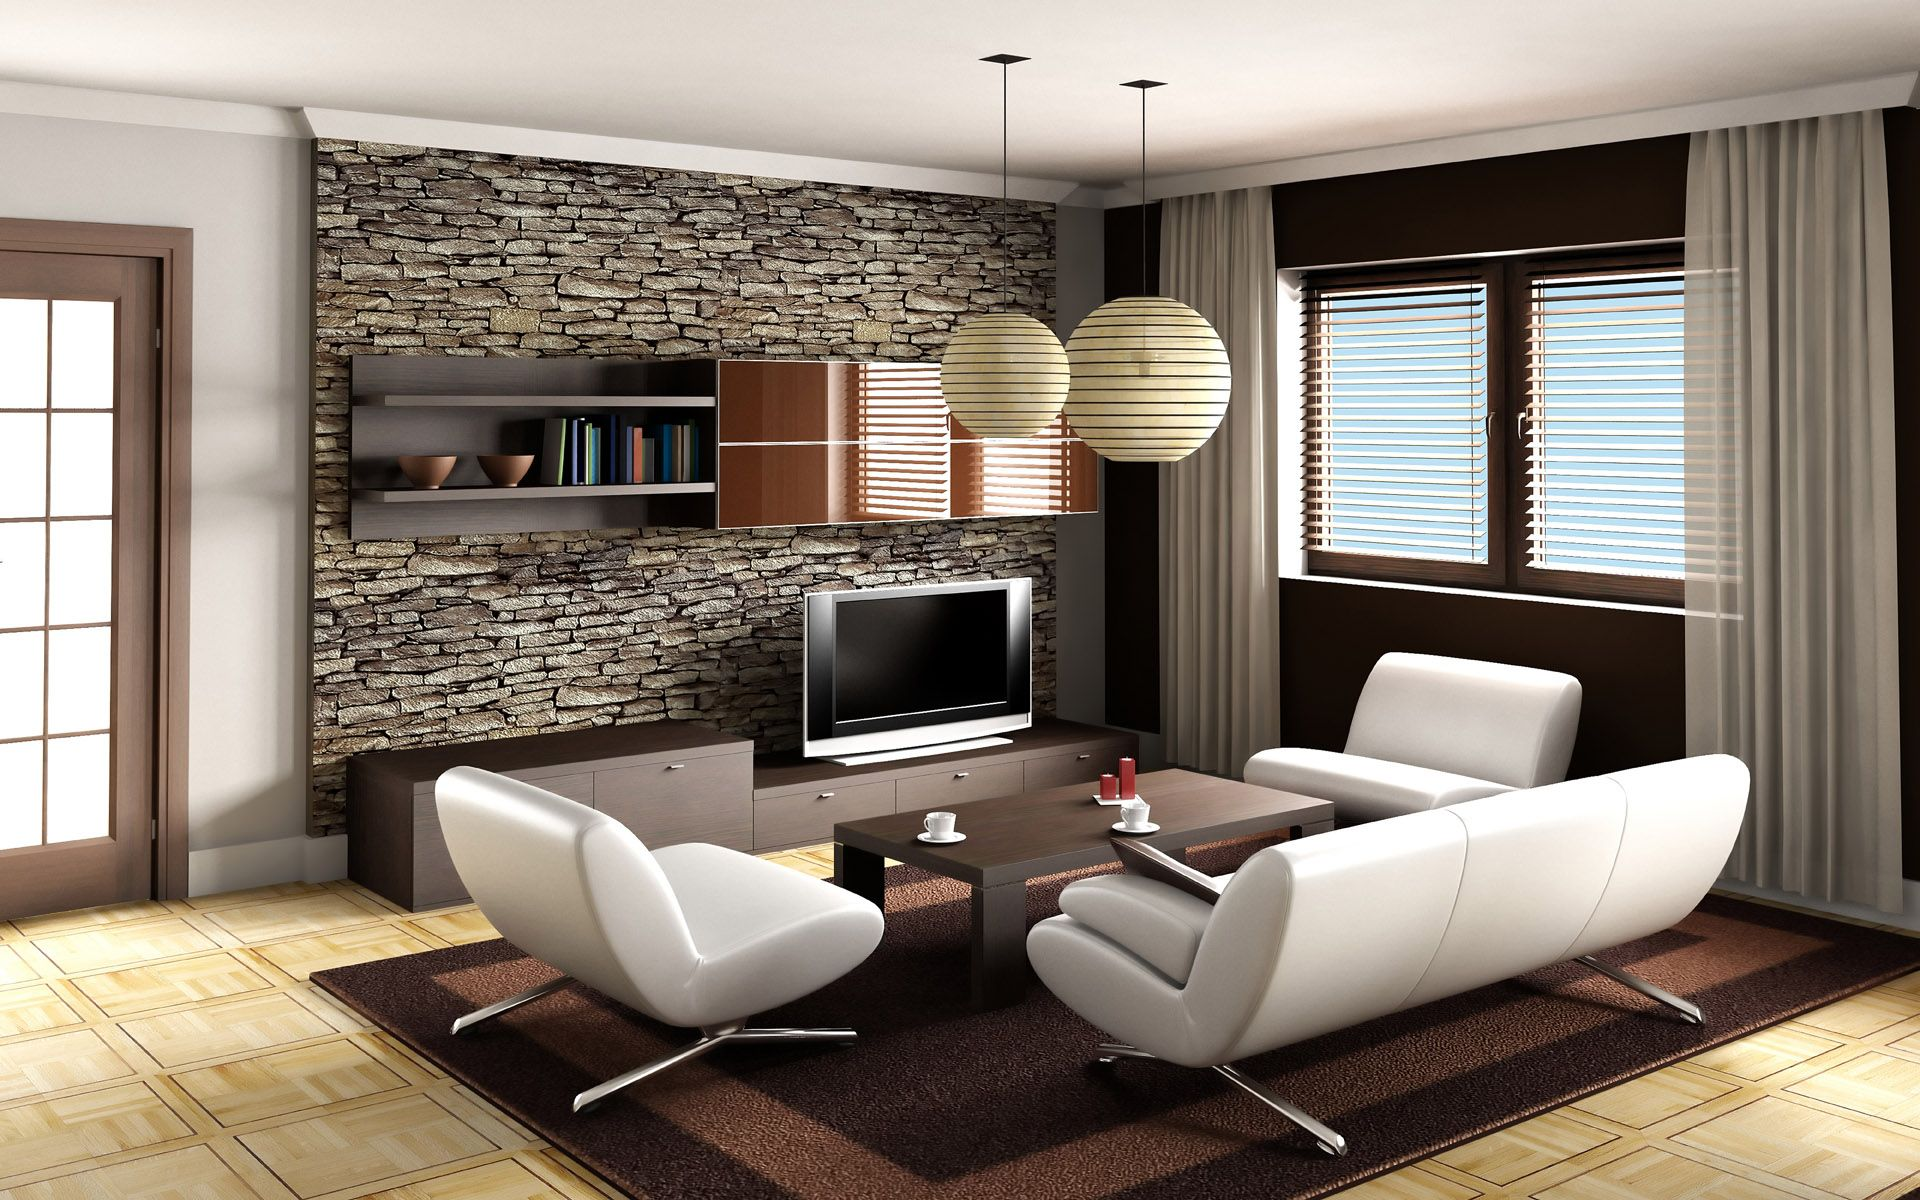 Are You Looking For Small Living Room Ideas To Make The Limited Space In Your